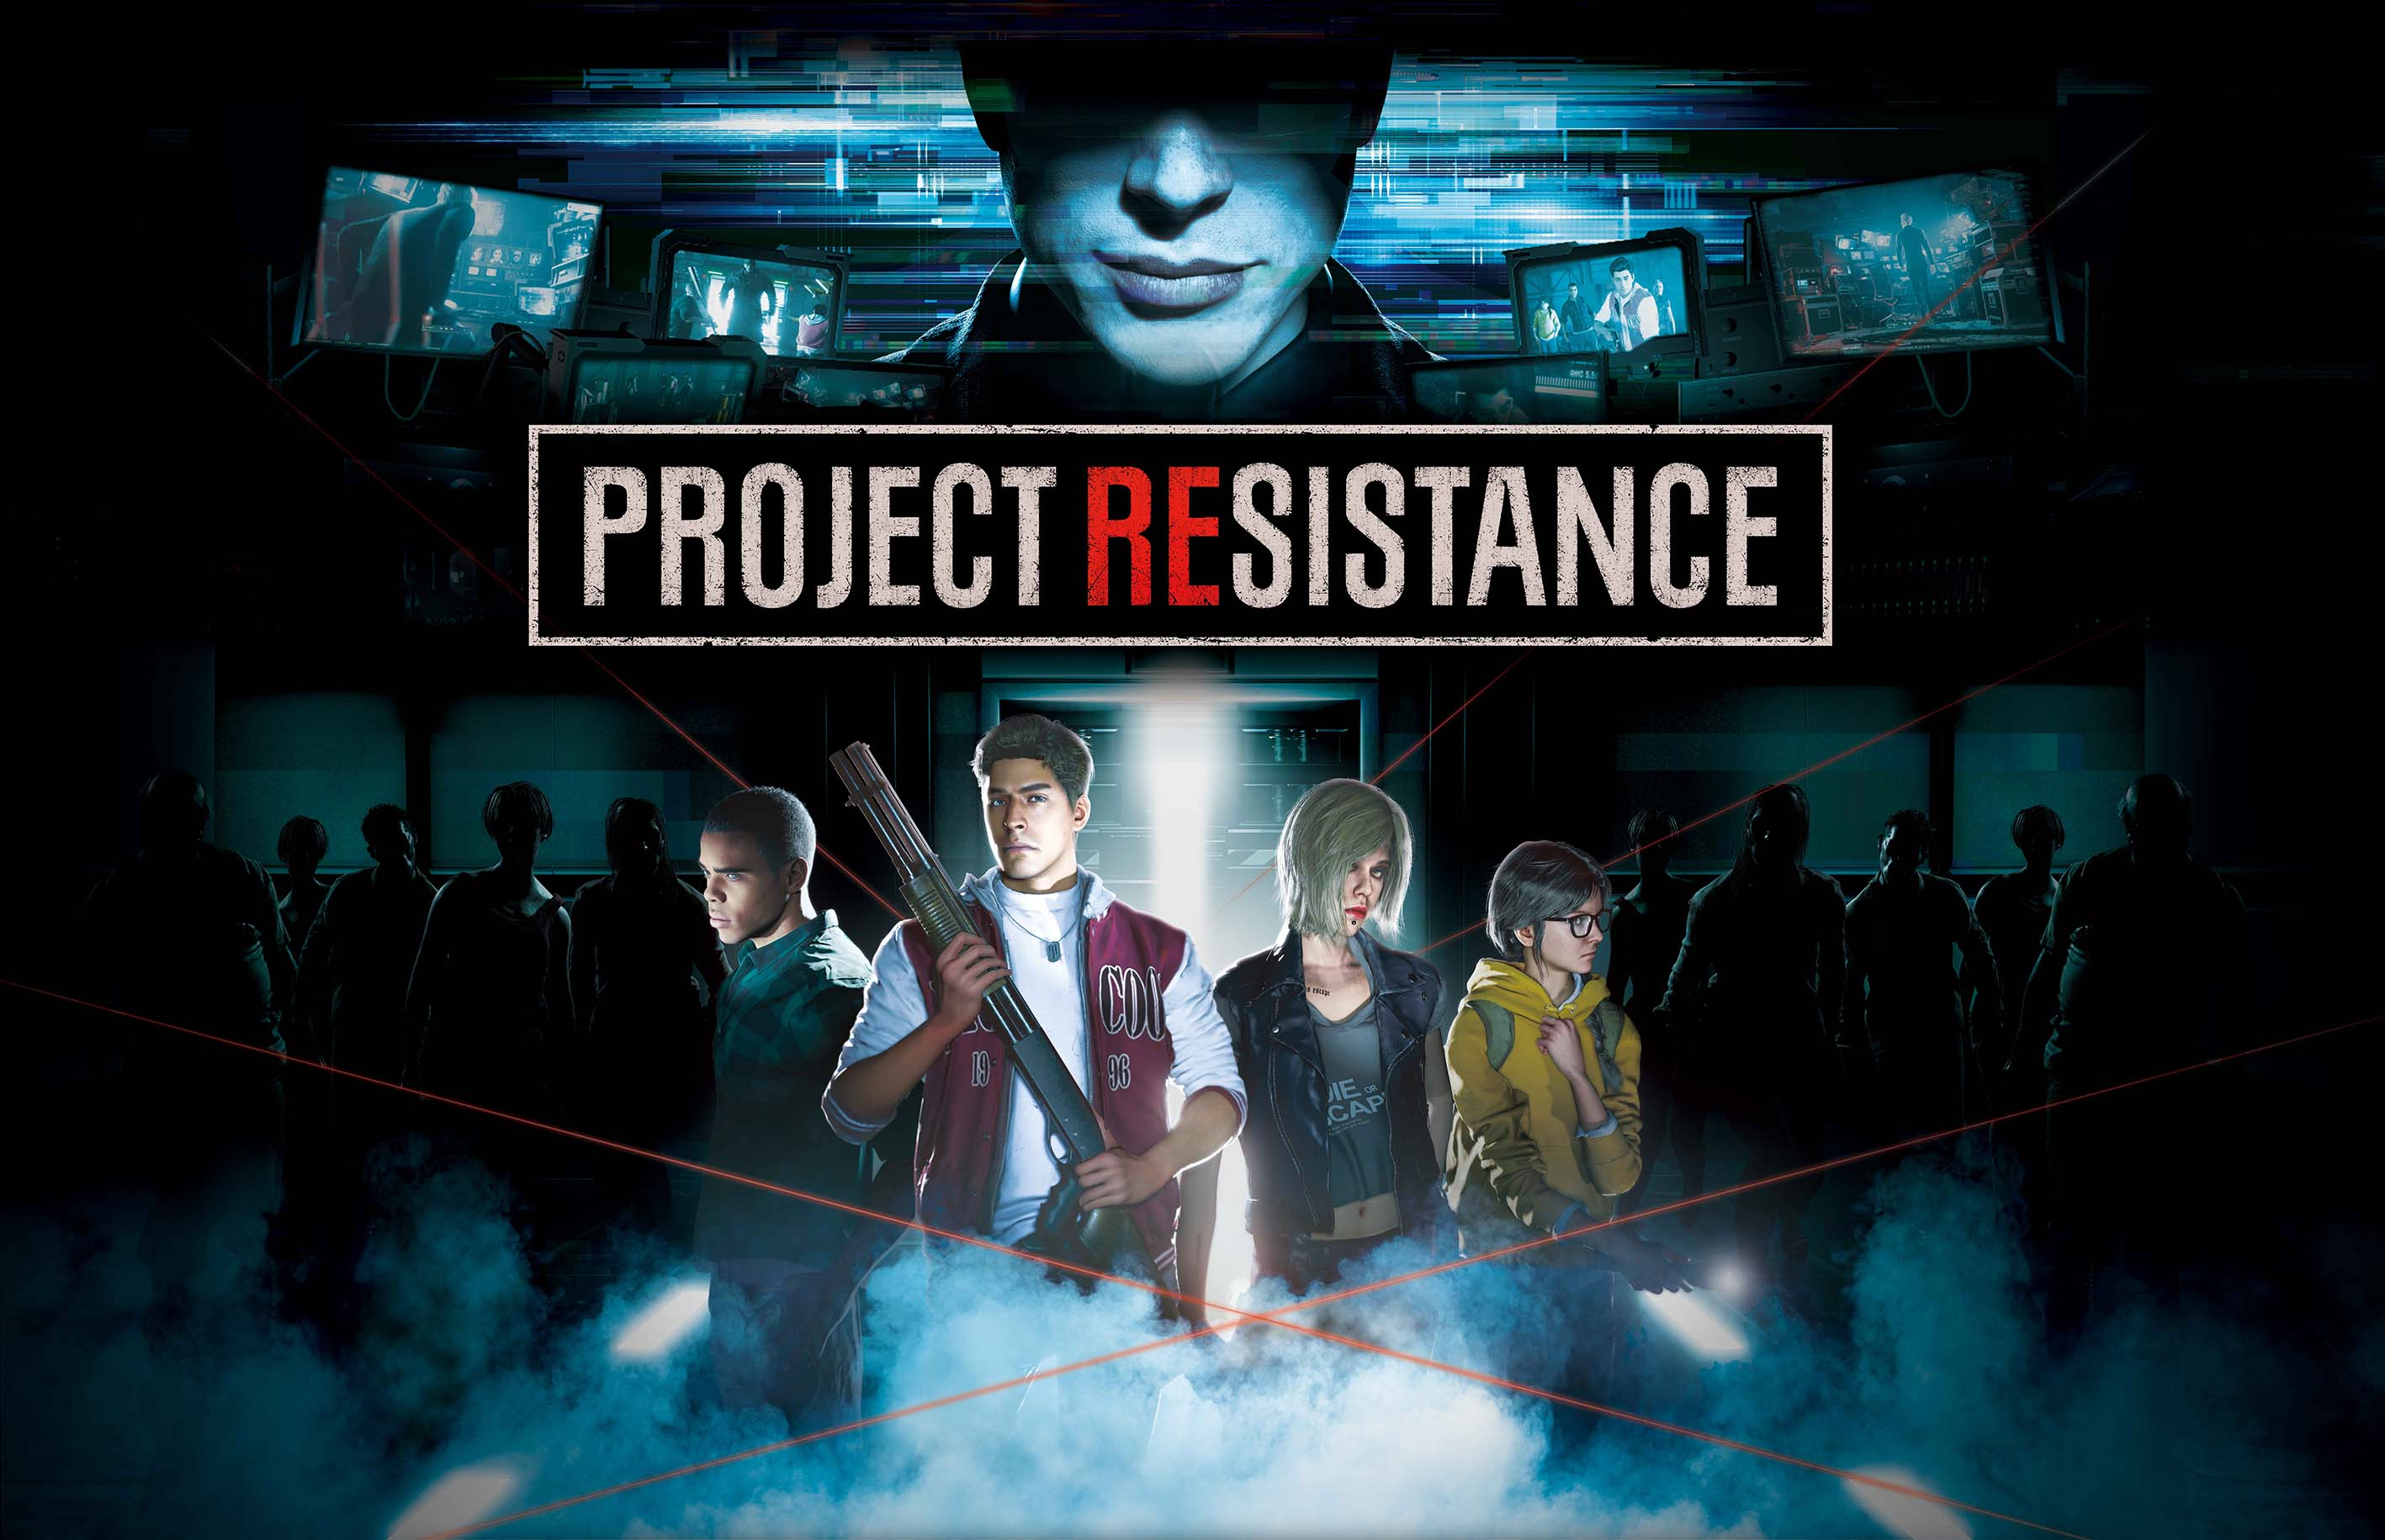 Project Resistance is 4v1 multiplayer built in the RE Engine